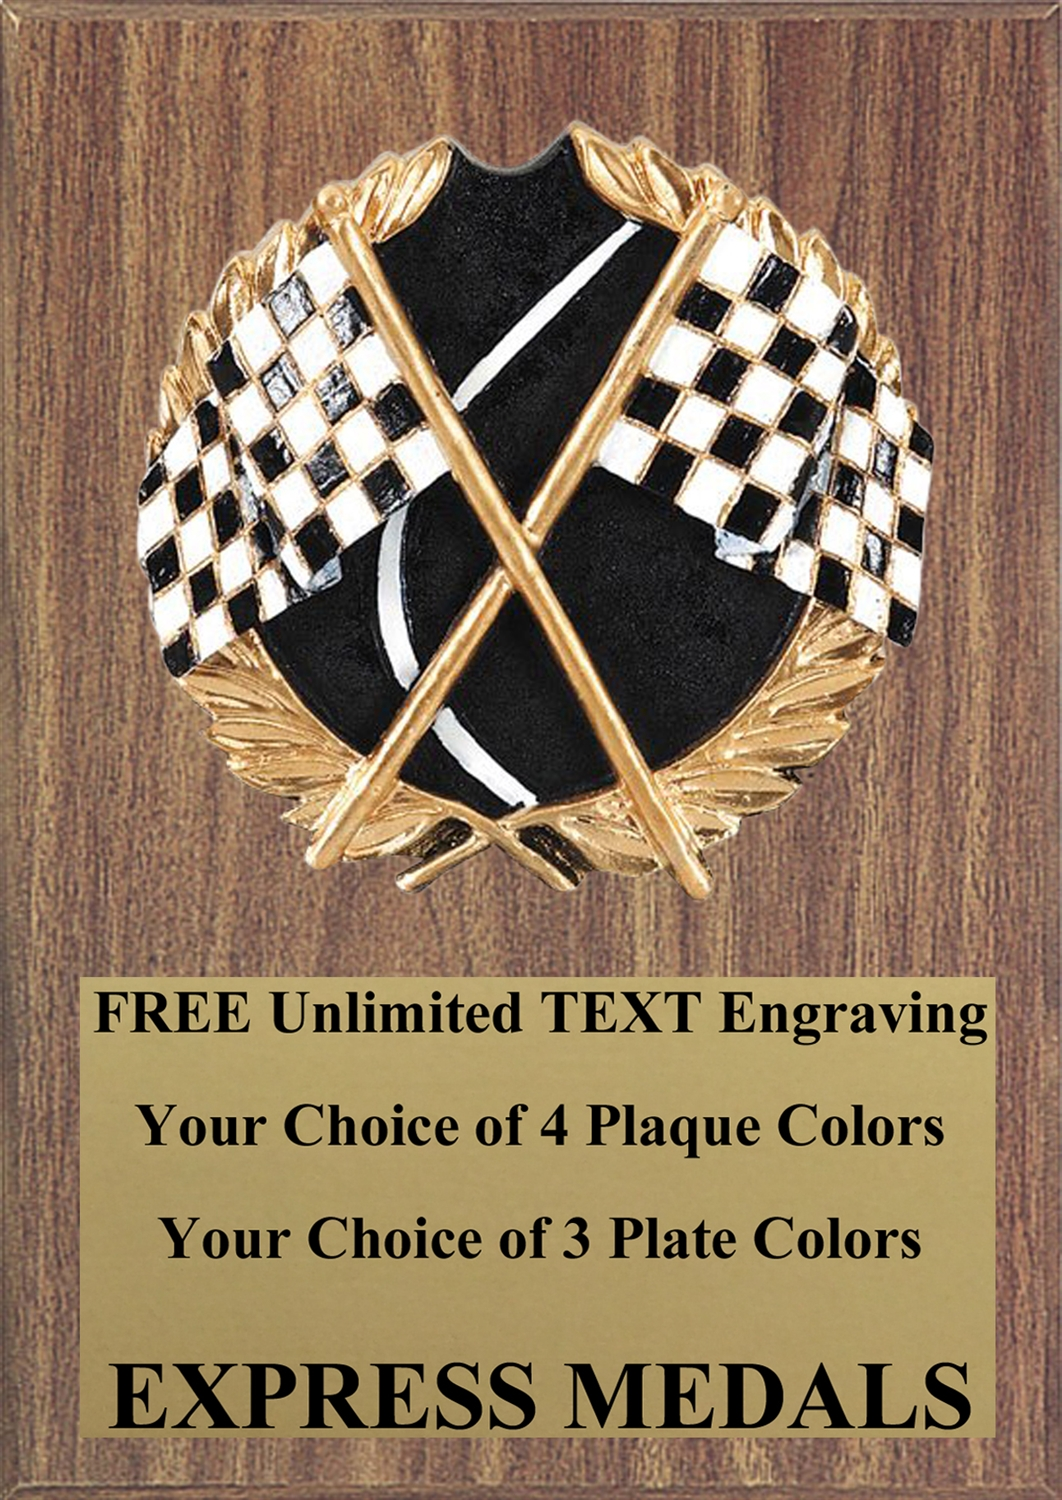 Full Color Racing Plaque 4x6 & 5x7 PM669-VL